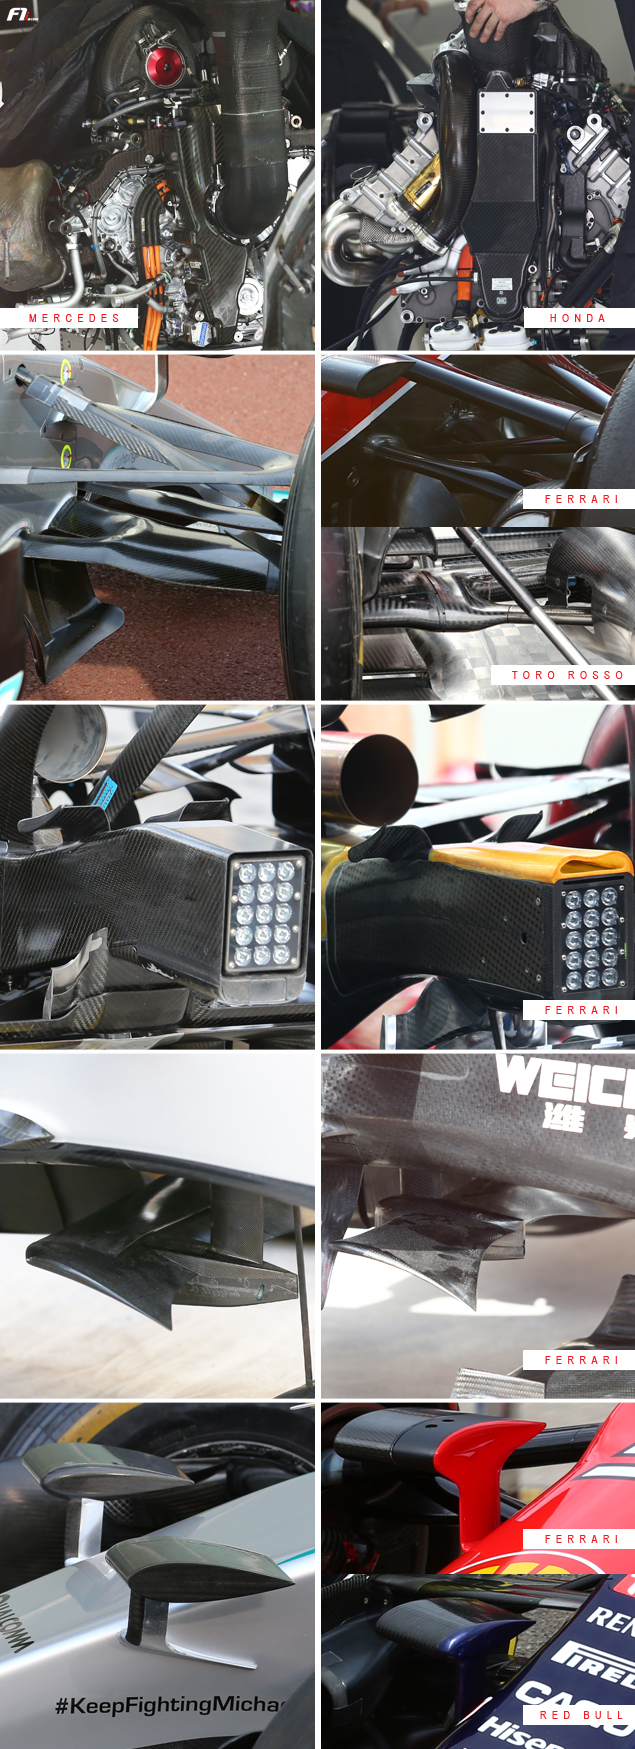 F1-technical-review-2015_Mercedes_2